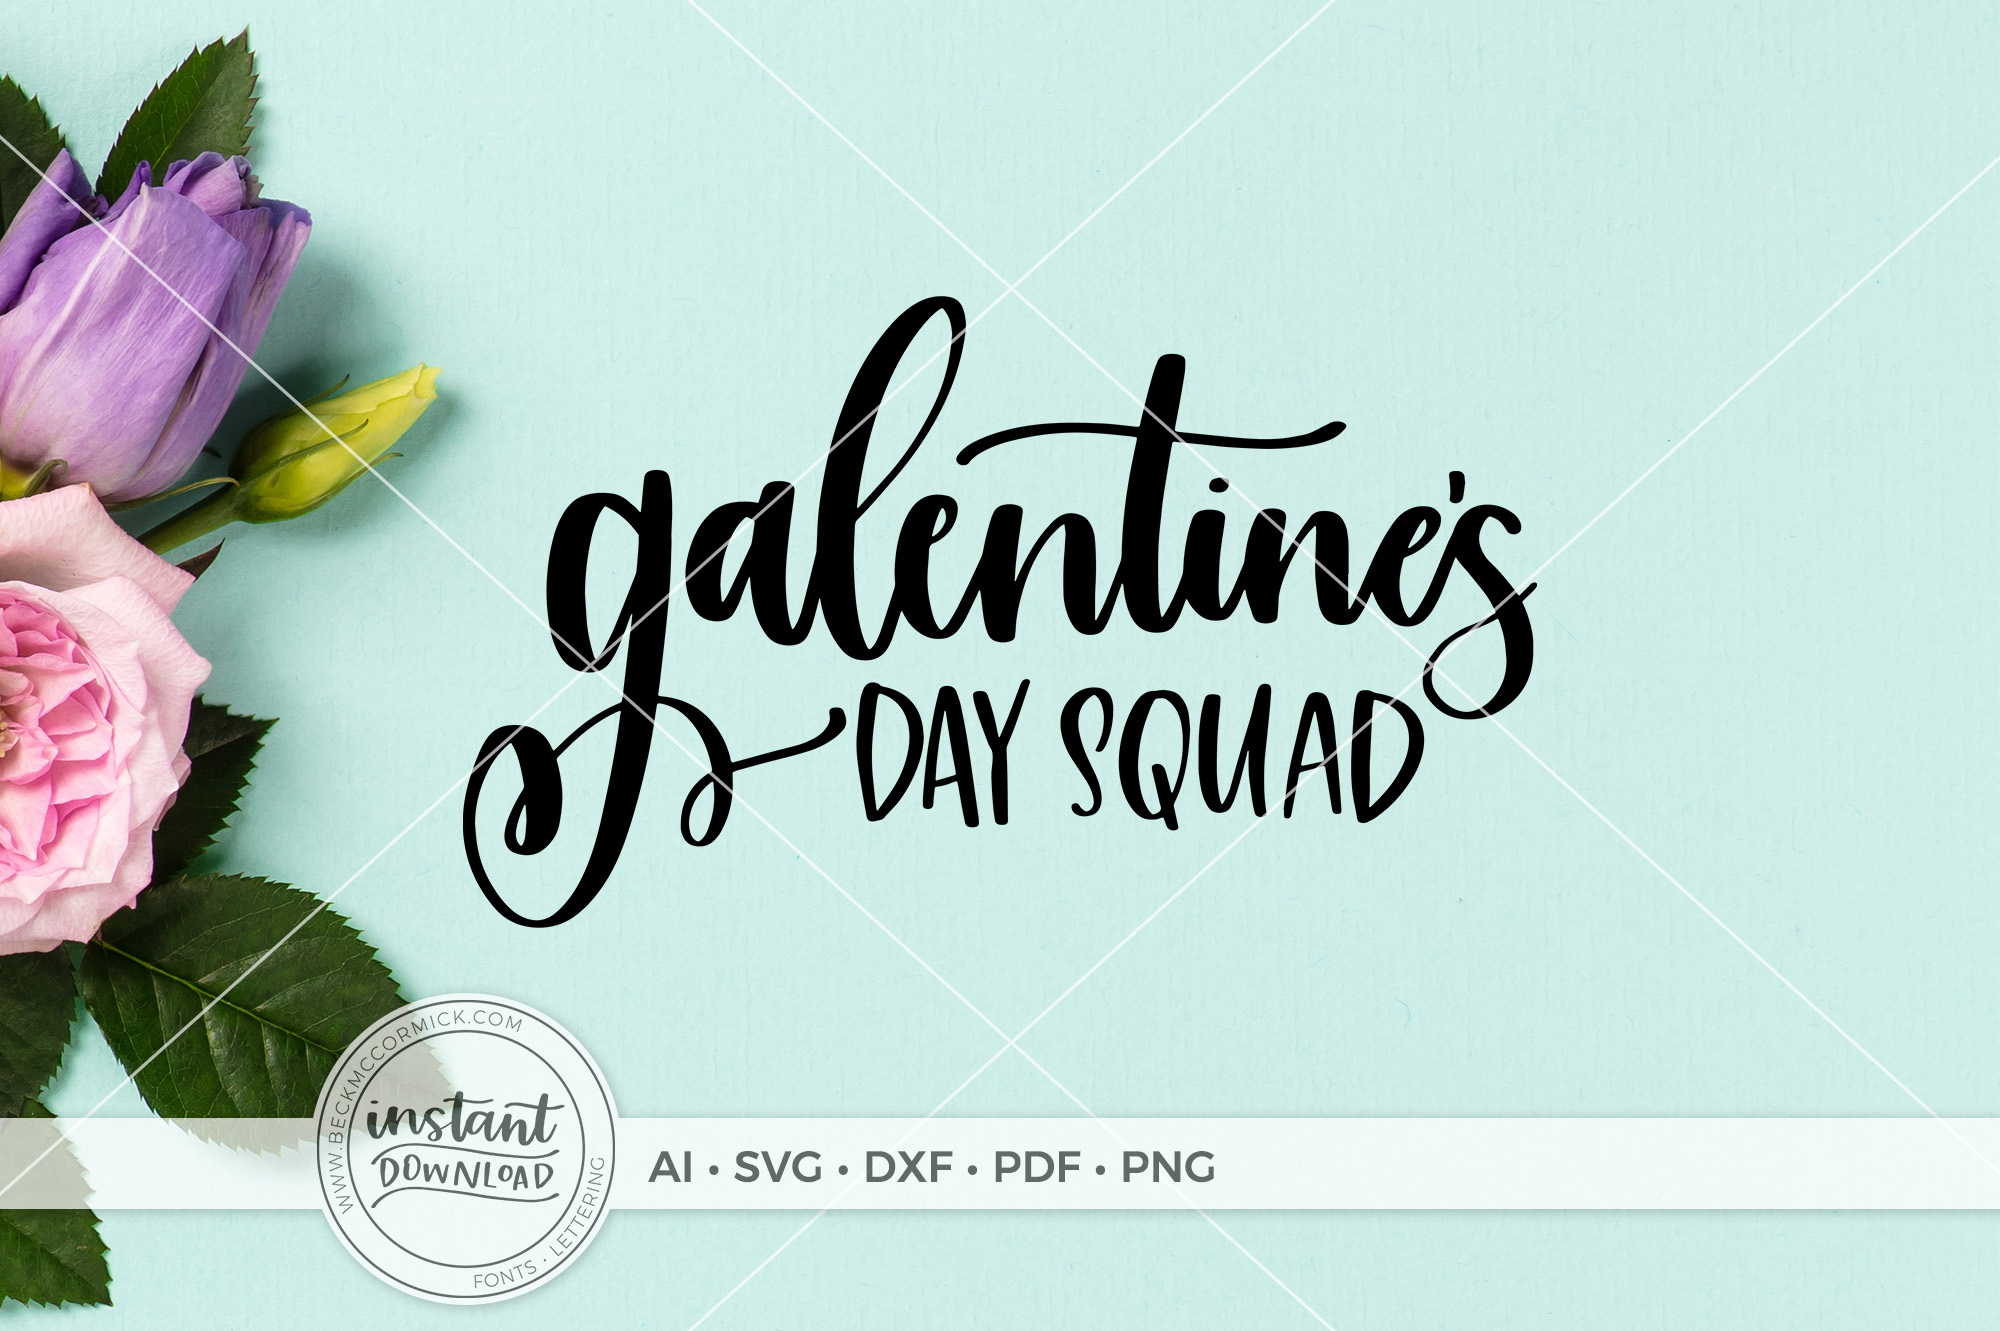 Download Free Galentine S Day Squad Graphic By Beckmccormick Creative Fabrica for Cricut Explore, Silhouette and other cutting machines.